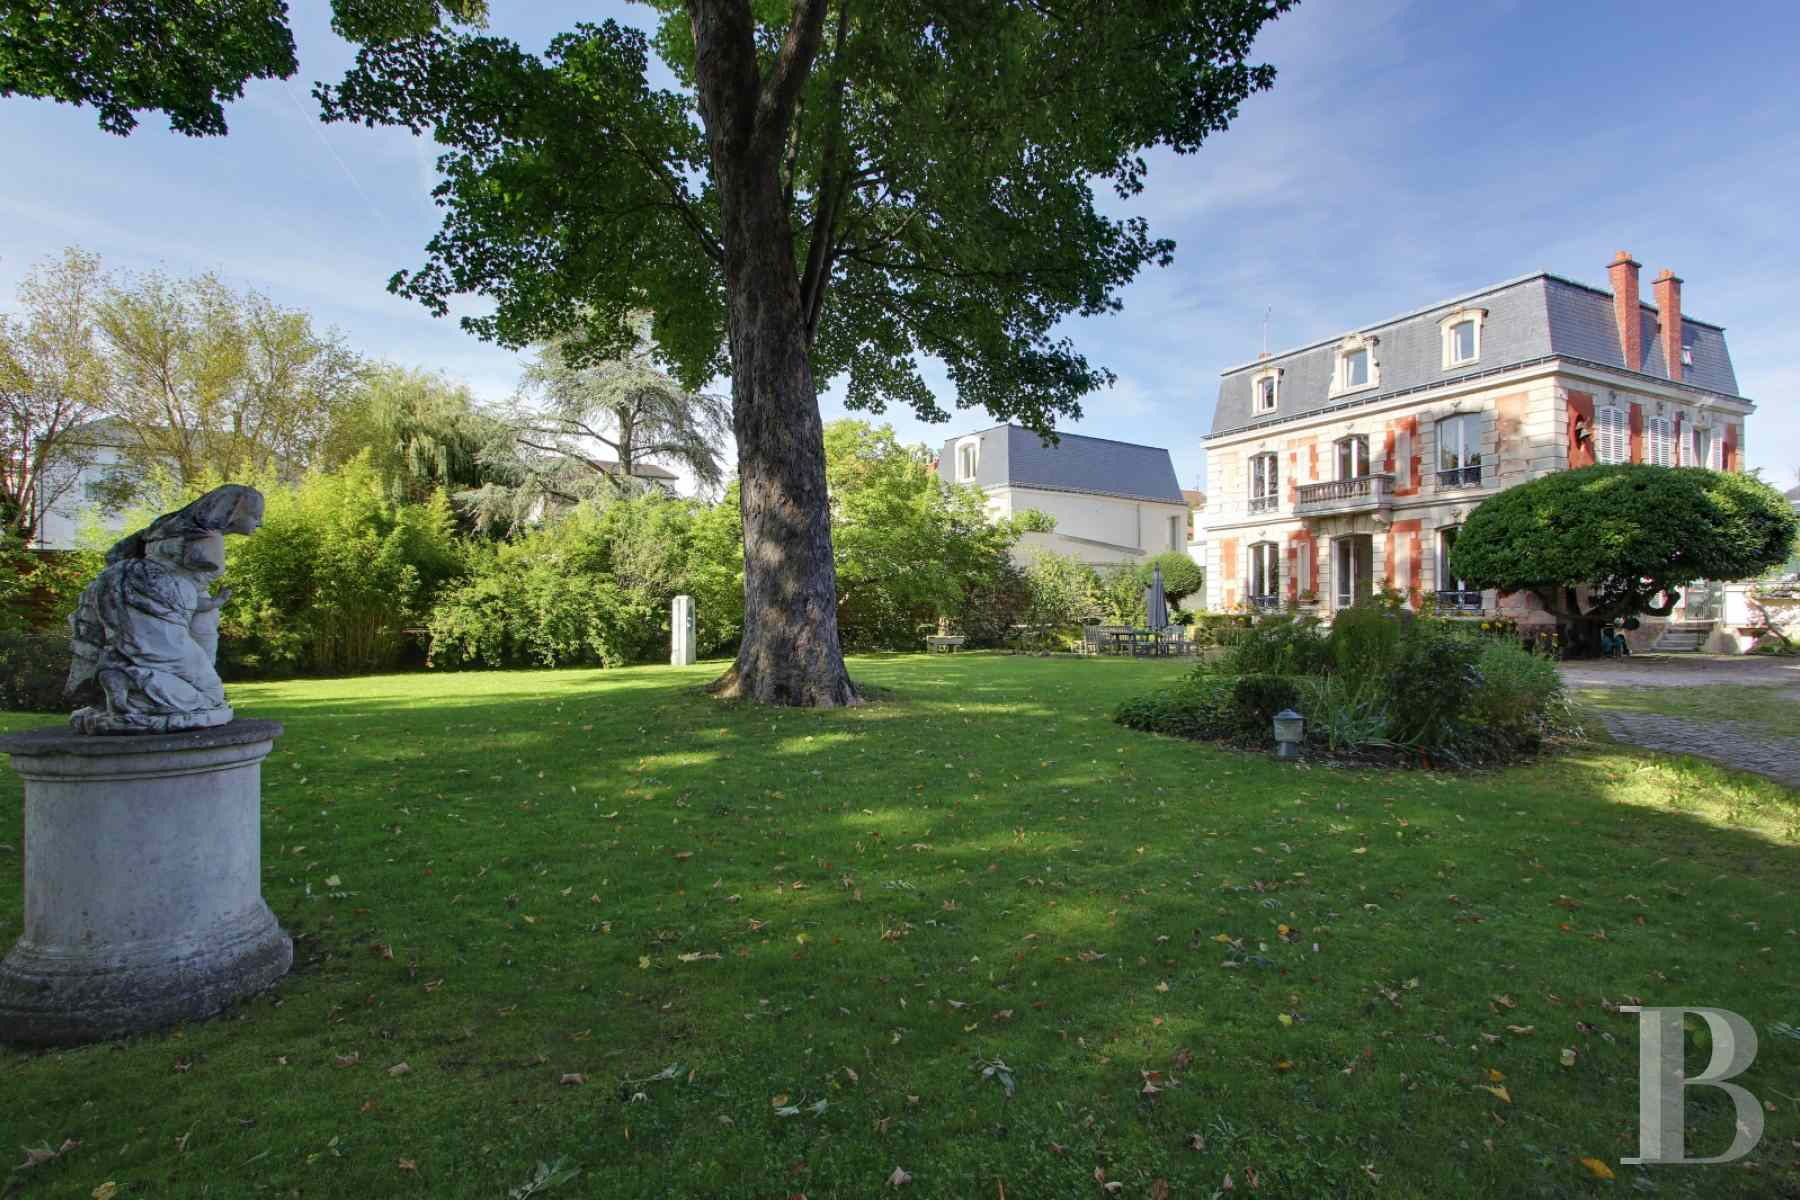 property for sale France paris antony property - 18 zoom